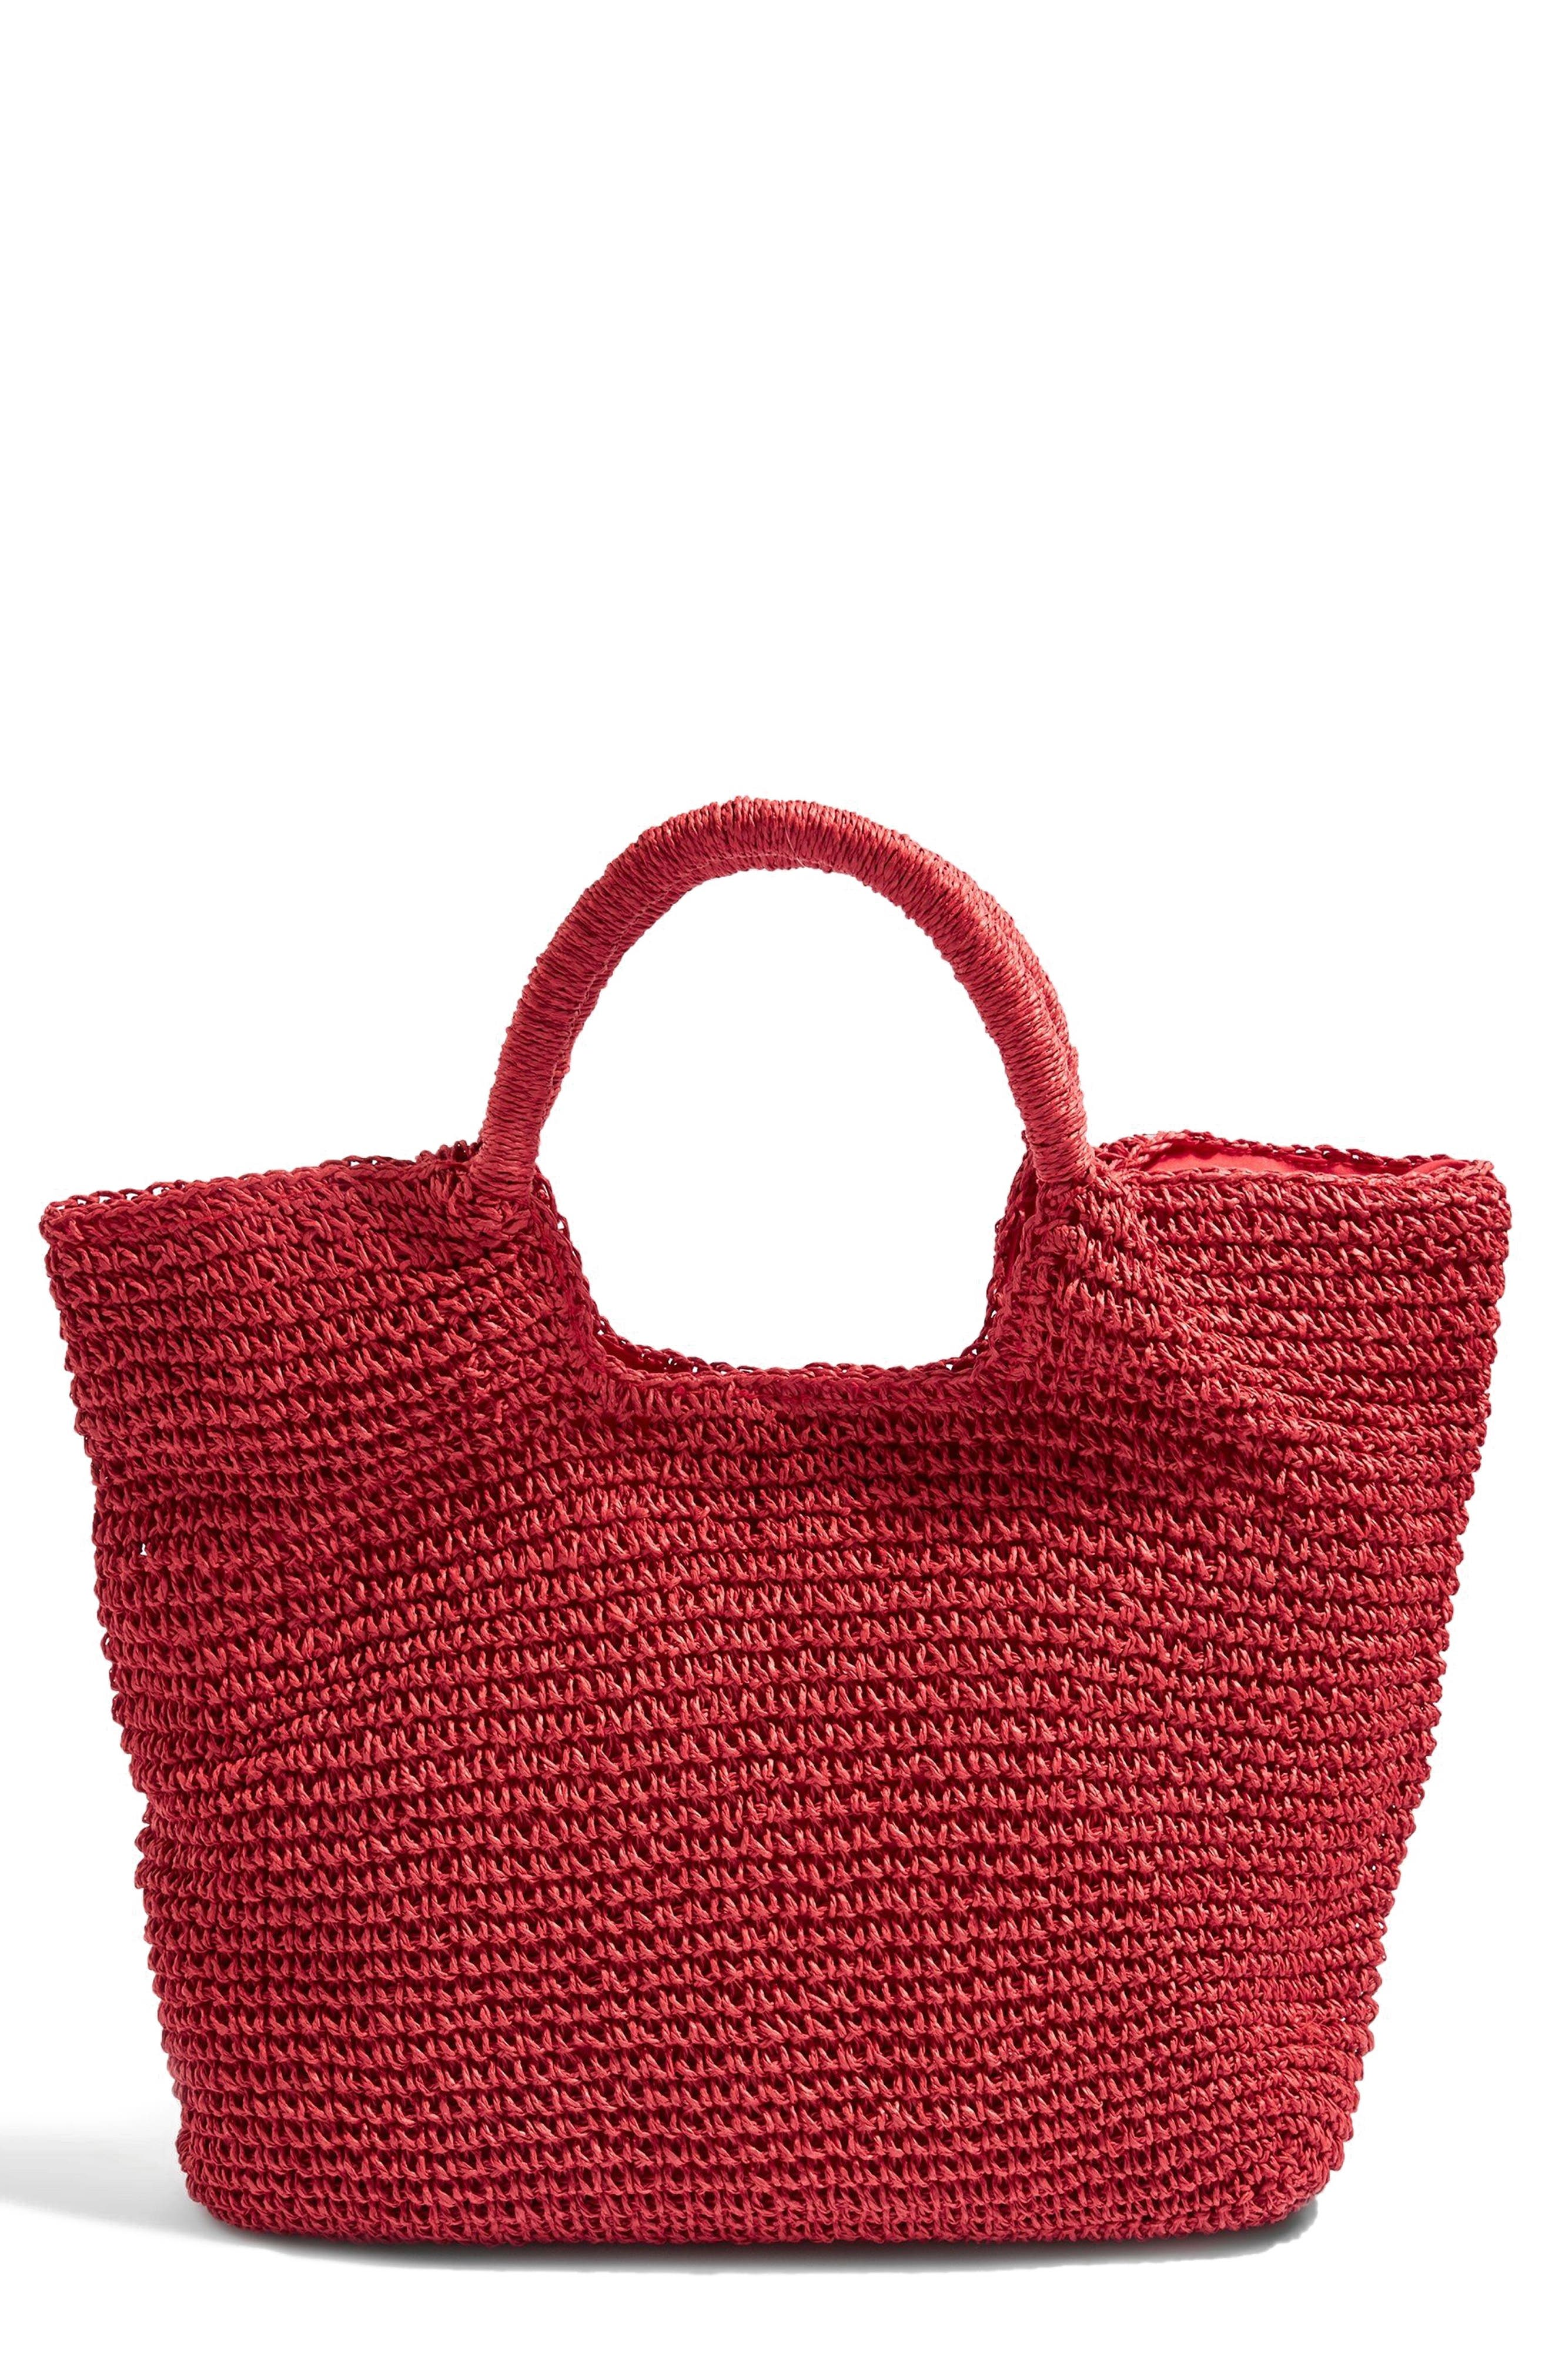 Brighty Straw Tote Bag,                             Main thumbnail 1, color,